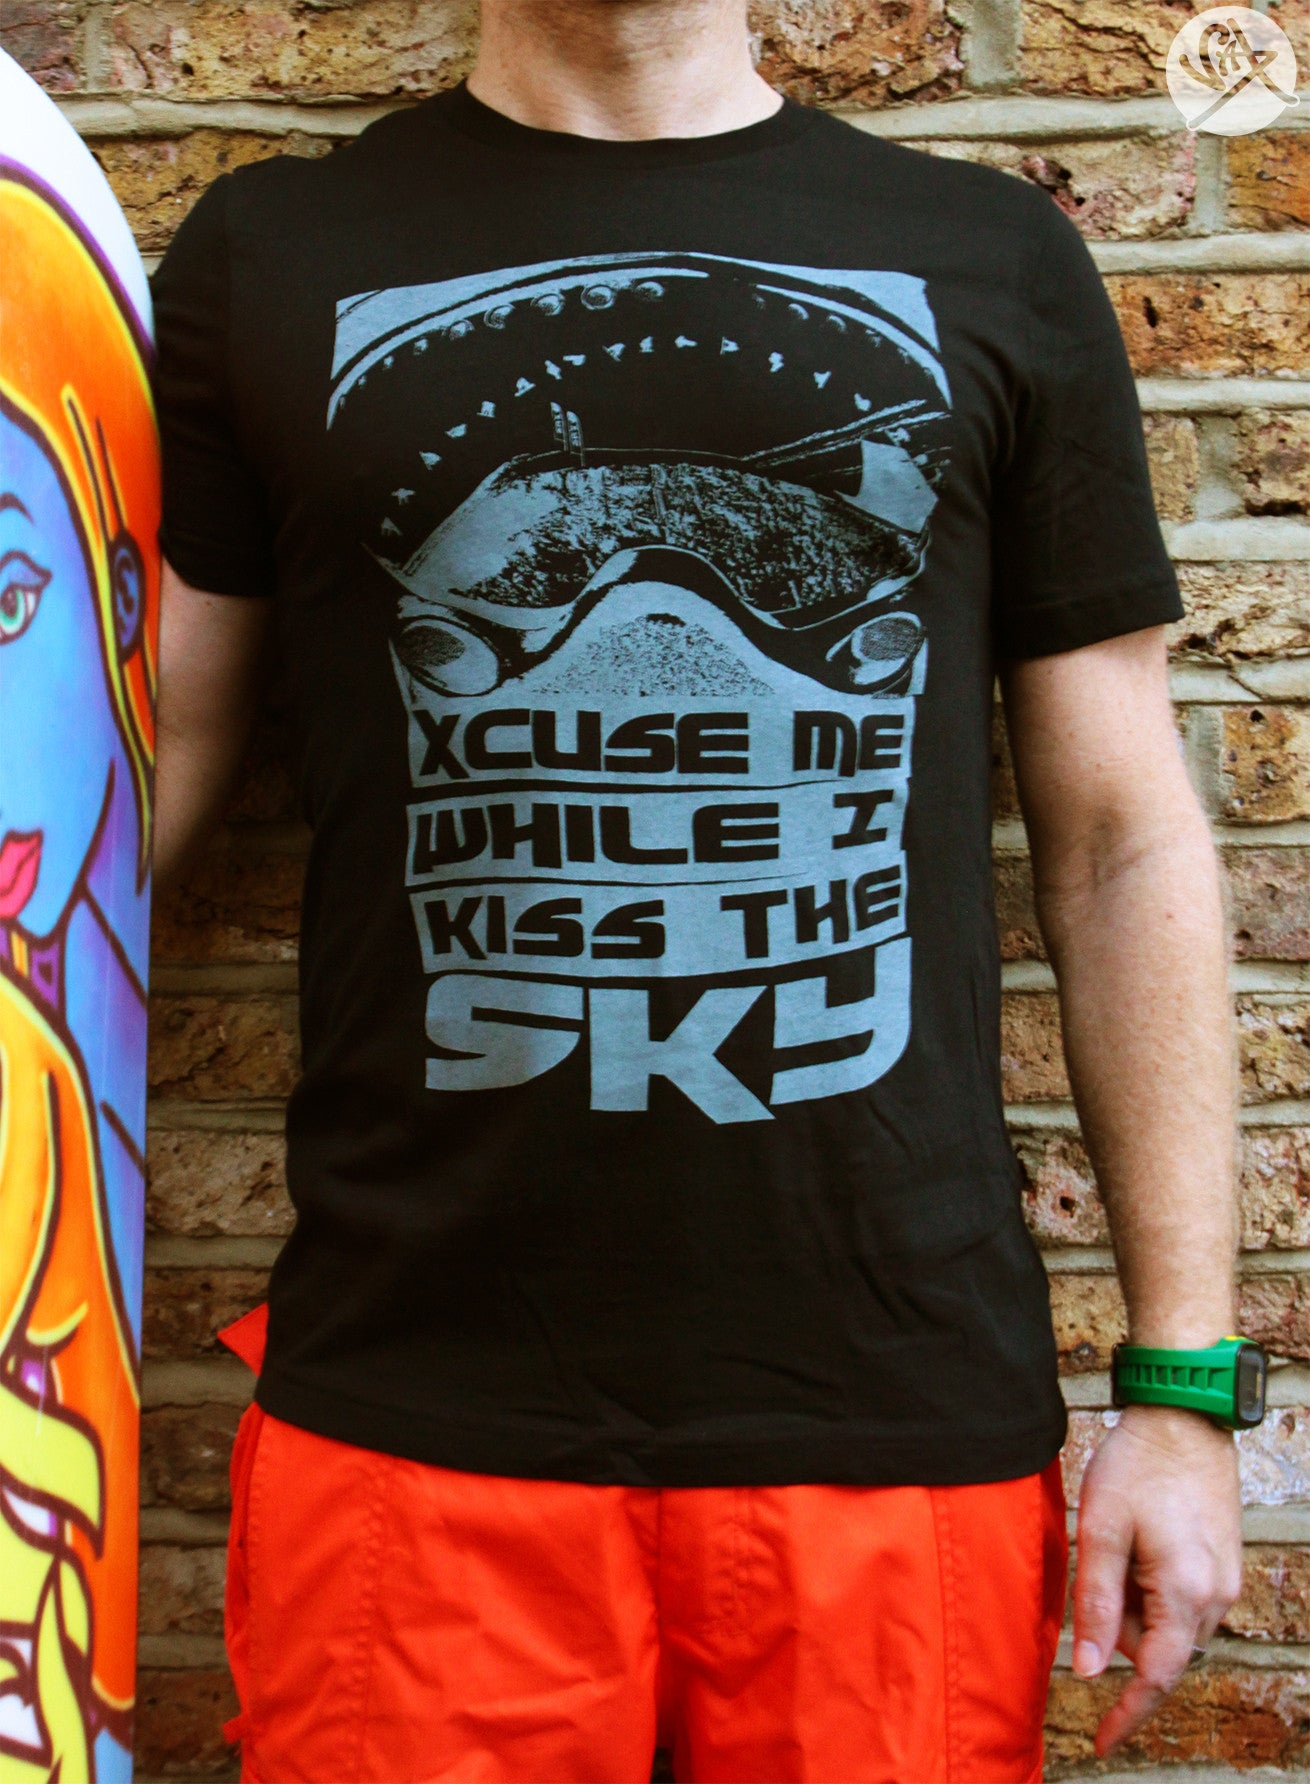 SAX TEES - KISS THE SKY Snowboarding T Shirt by SAXTEES